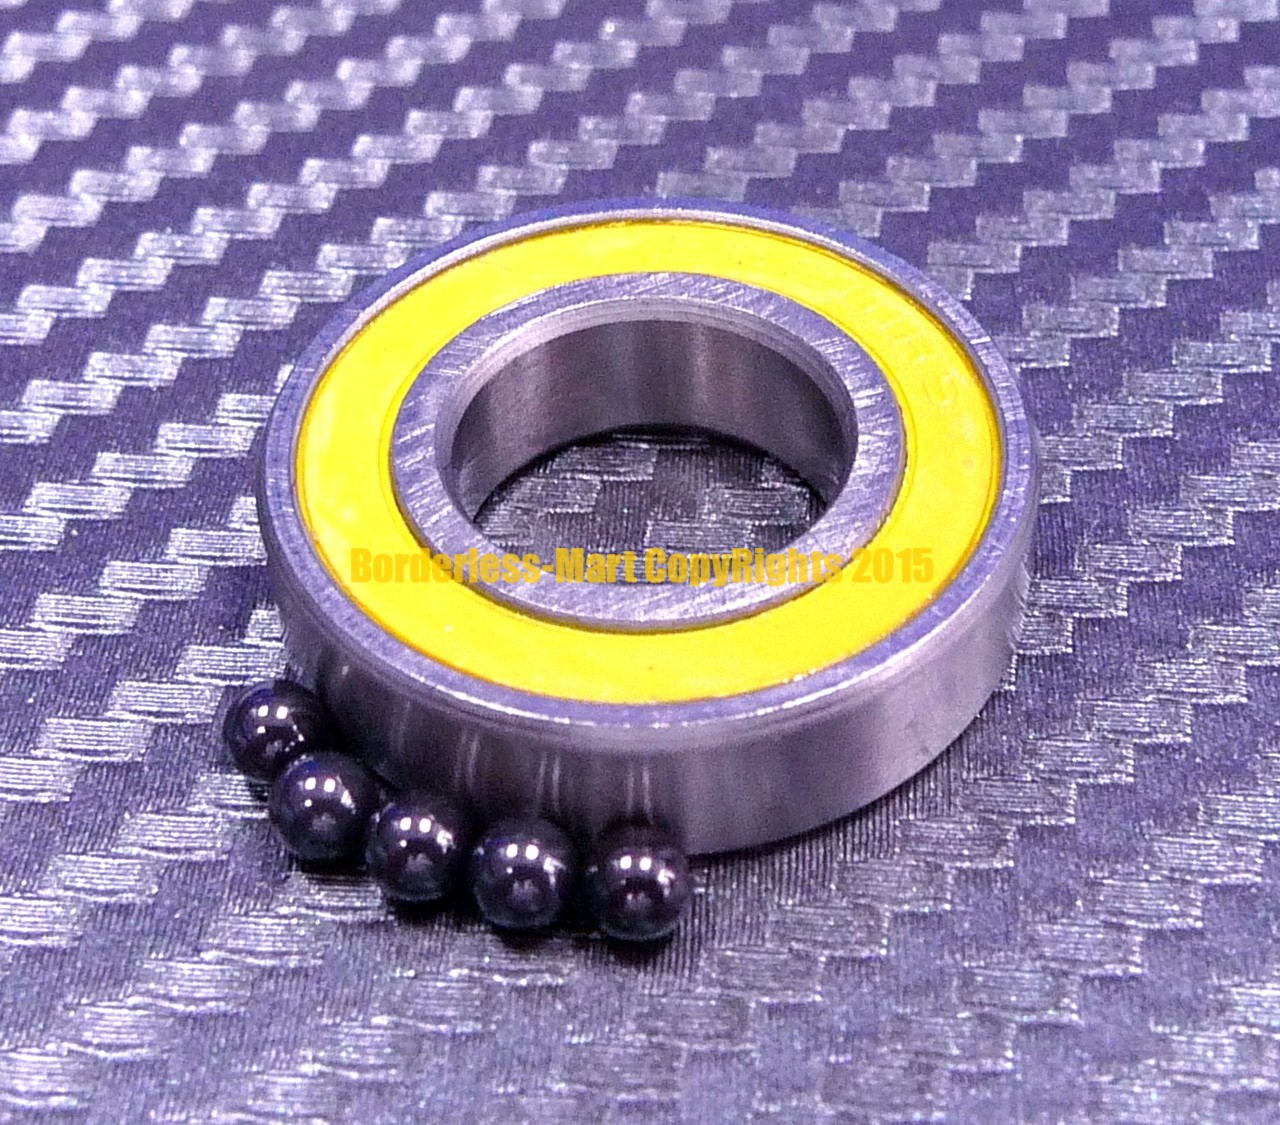 440c Stainless Steel Rubber Sealed Ball Bearings S606-2RS 10 PCS 6x17x6 mm